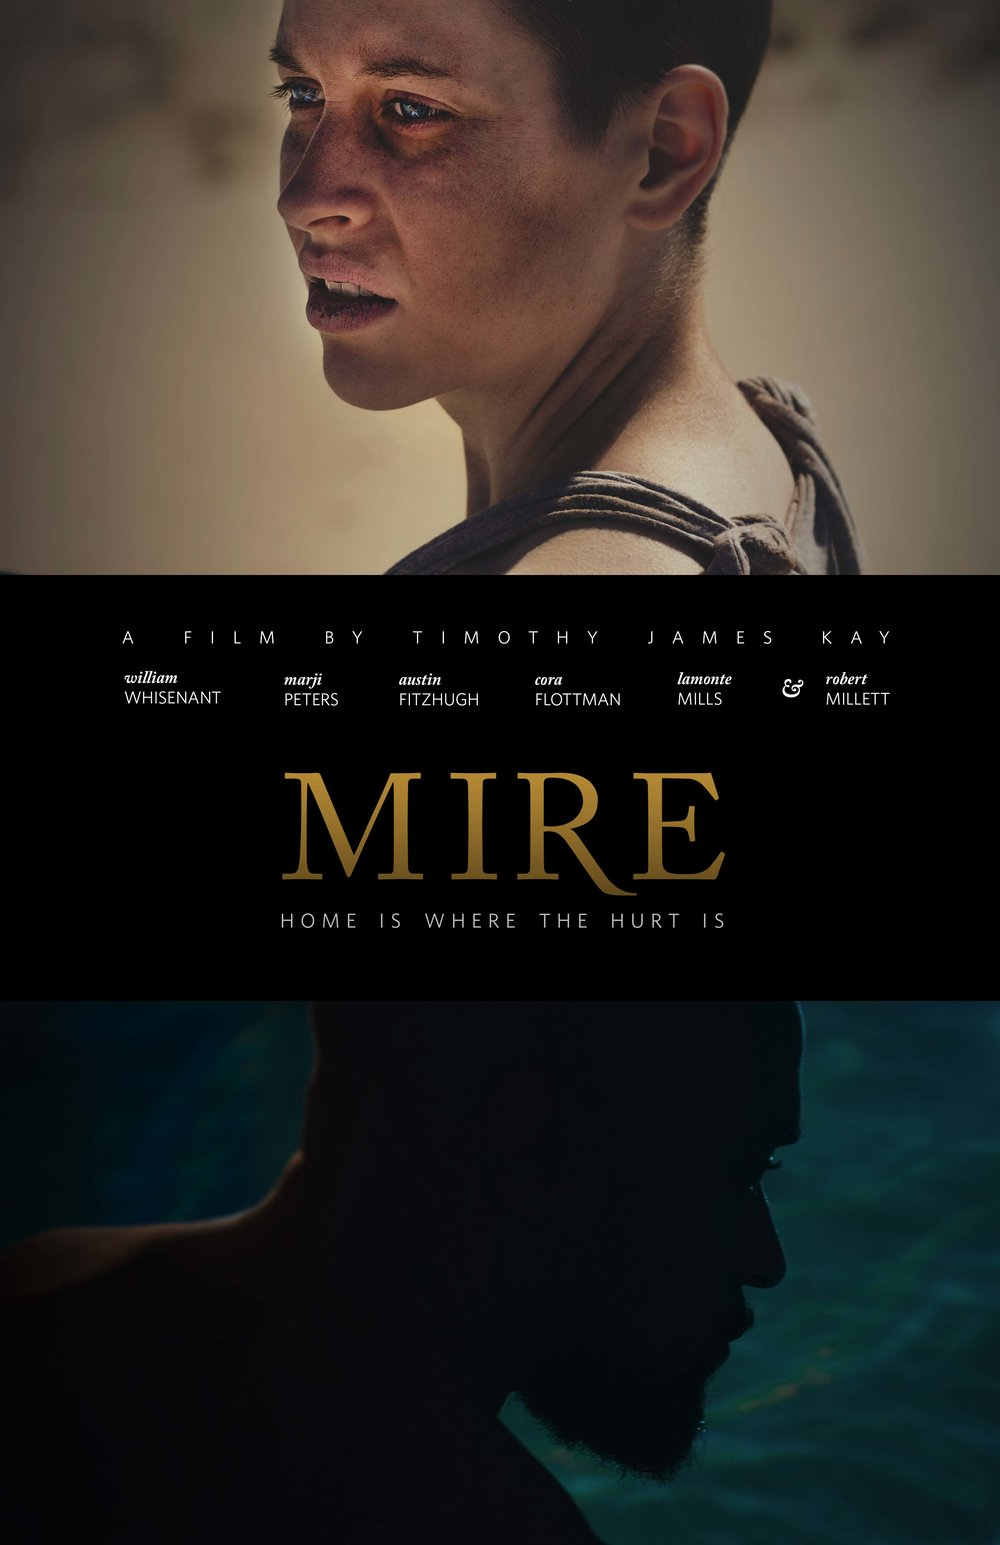 MIRE   - A young couple trying to save their marriage attempts therapy in the wake of a haunting tragedy, but when lies and secrets surface, their guilt and grief drivethem further apart. www.themirefilm.comAvailable Now on Amazon Prime